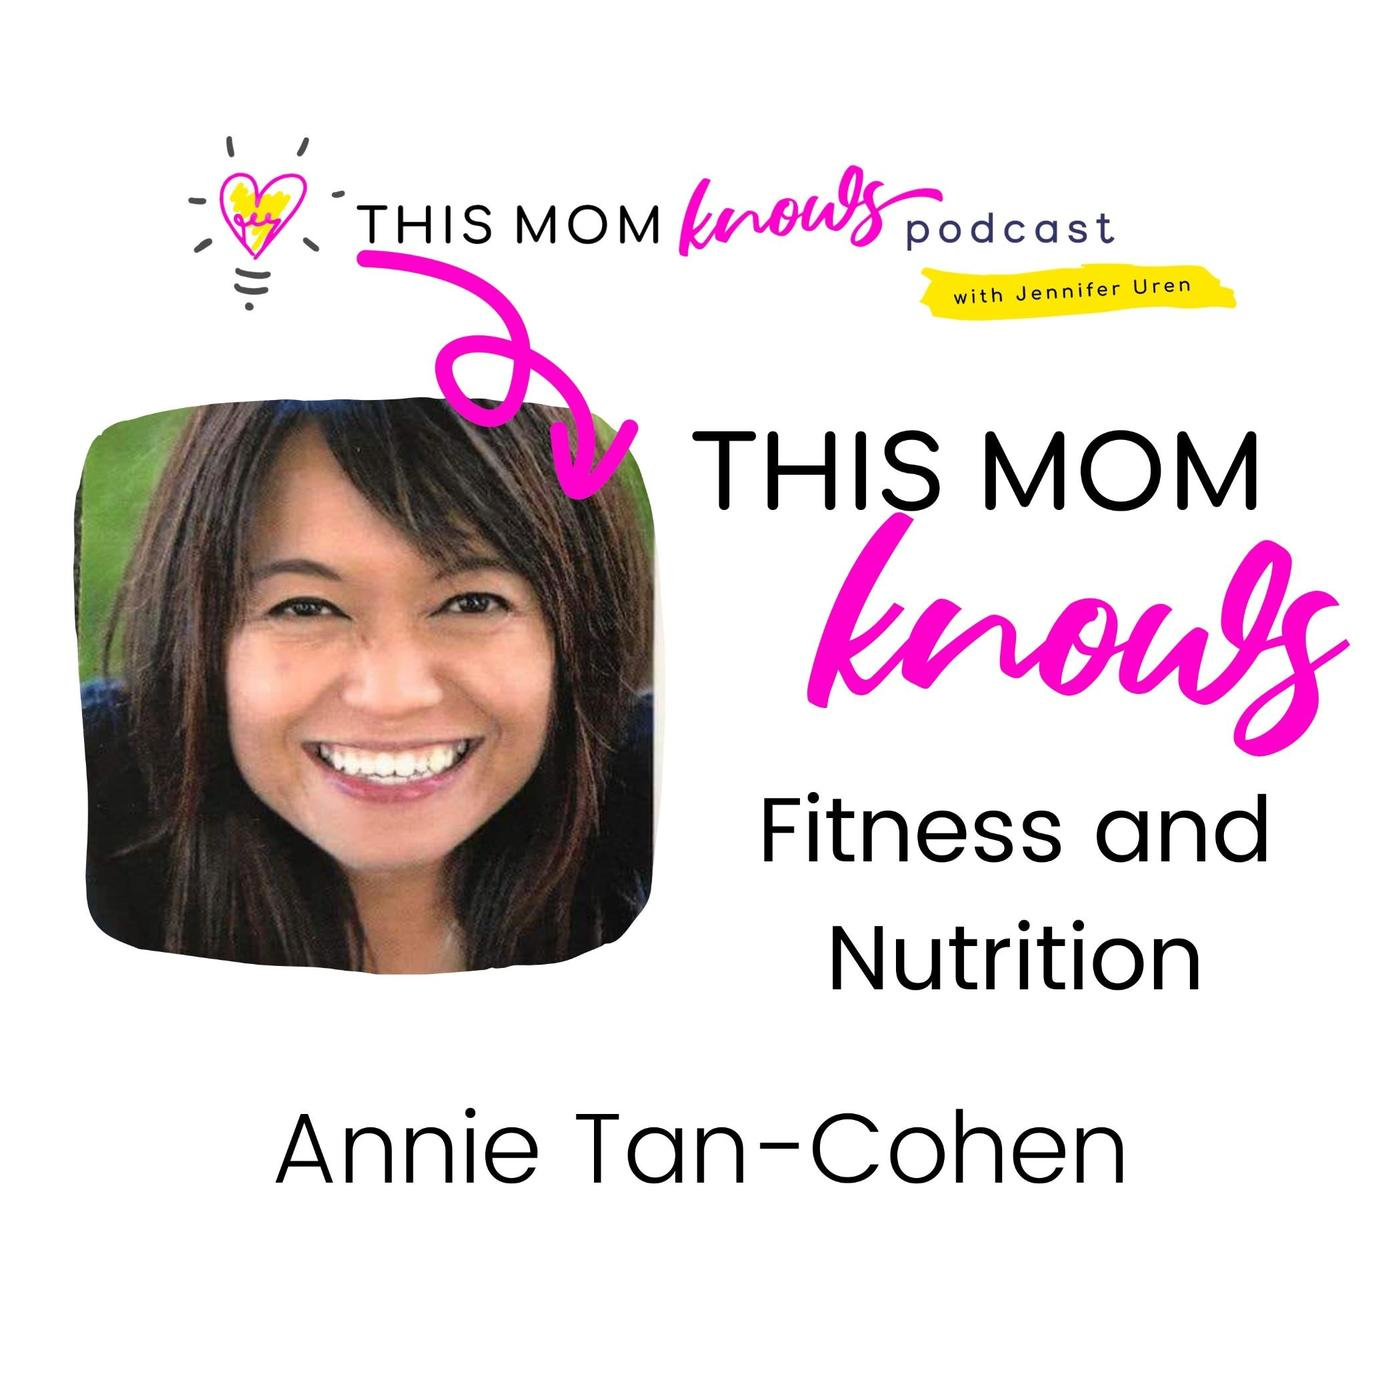 Annie Tan-Cohen on Fitness and Nutrition